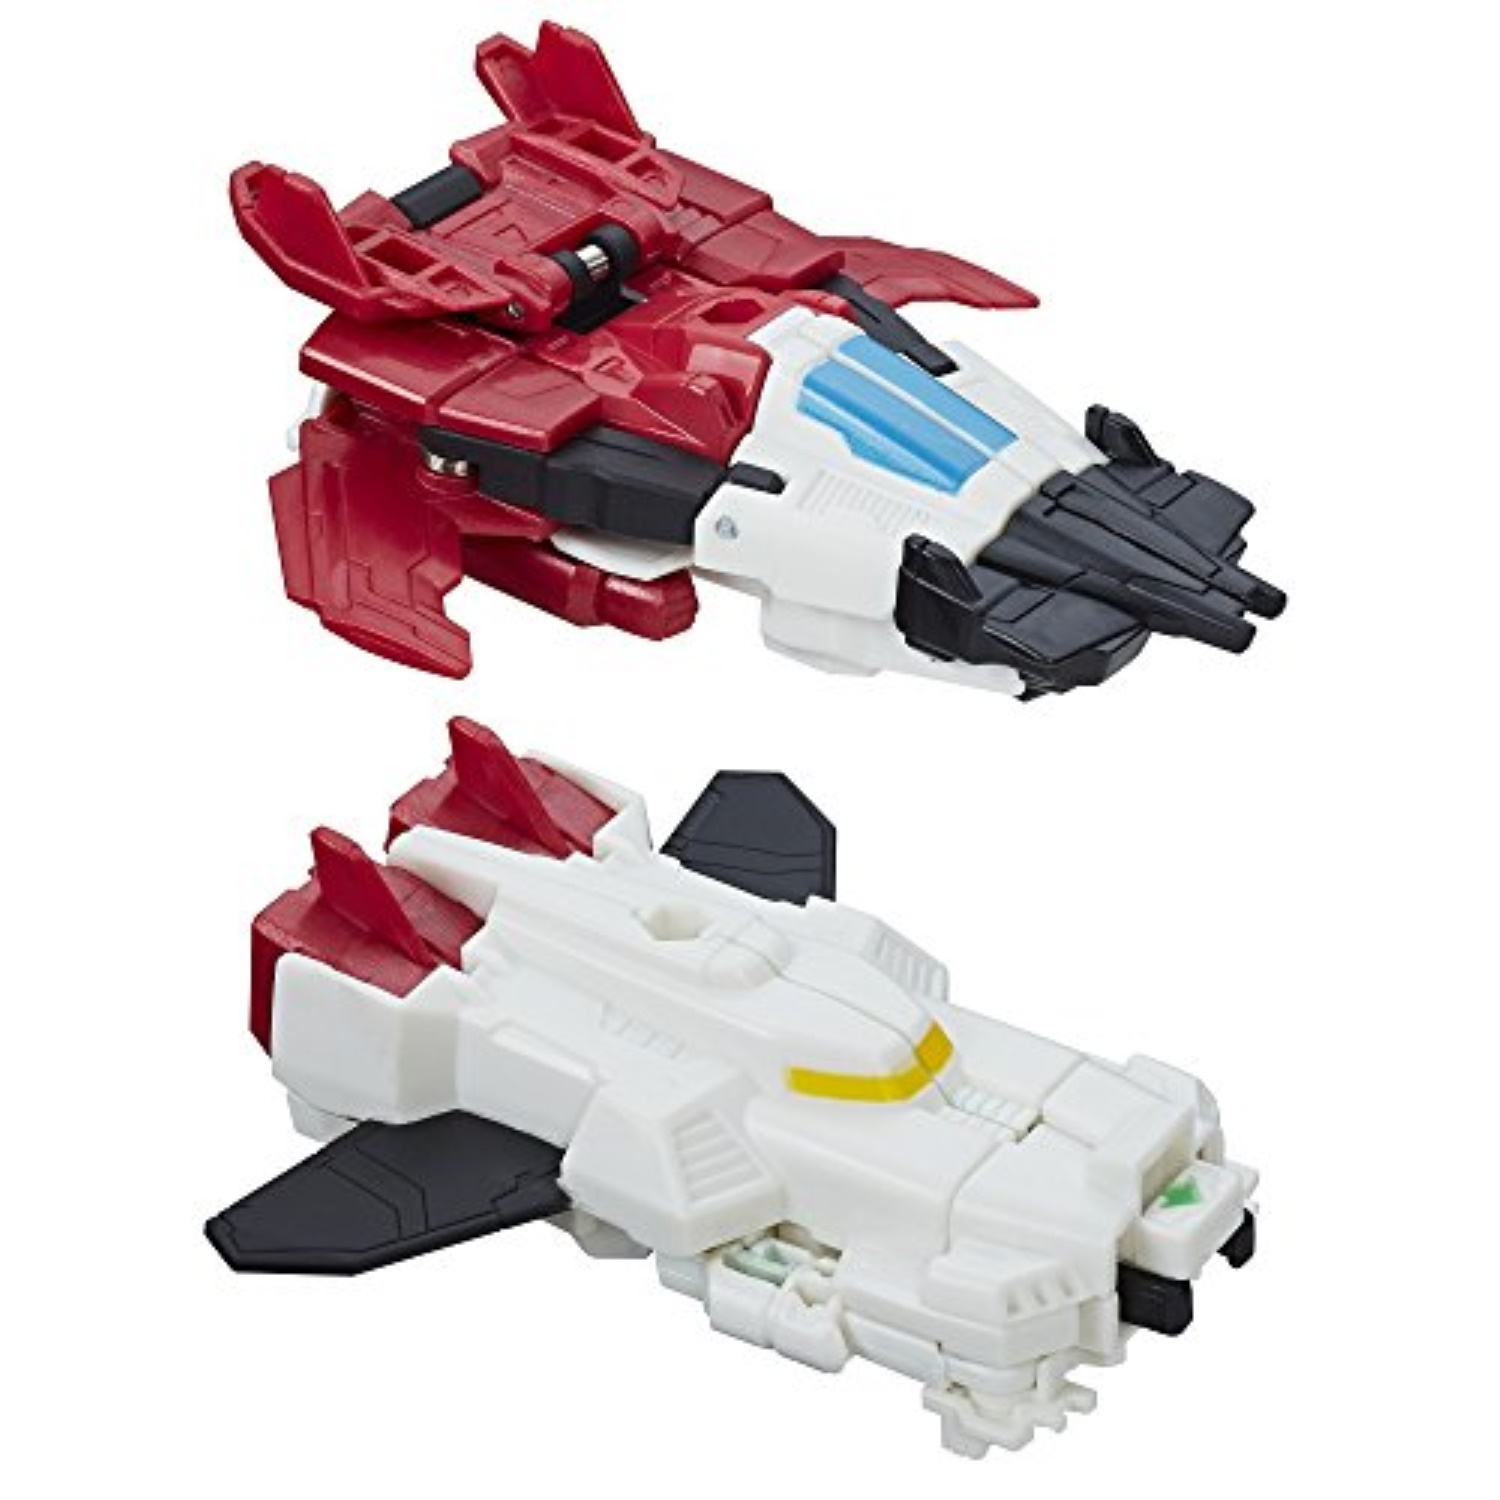 Transformers: Robots in Disguise Combiner Force Crash